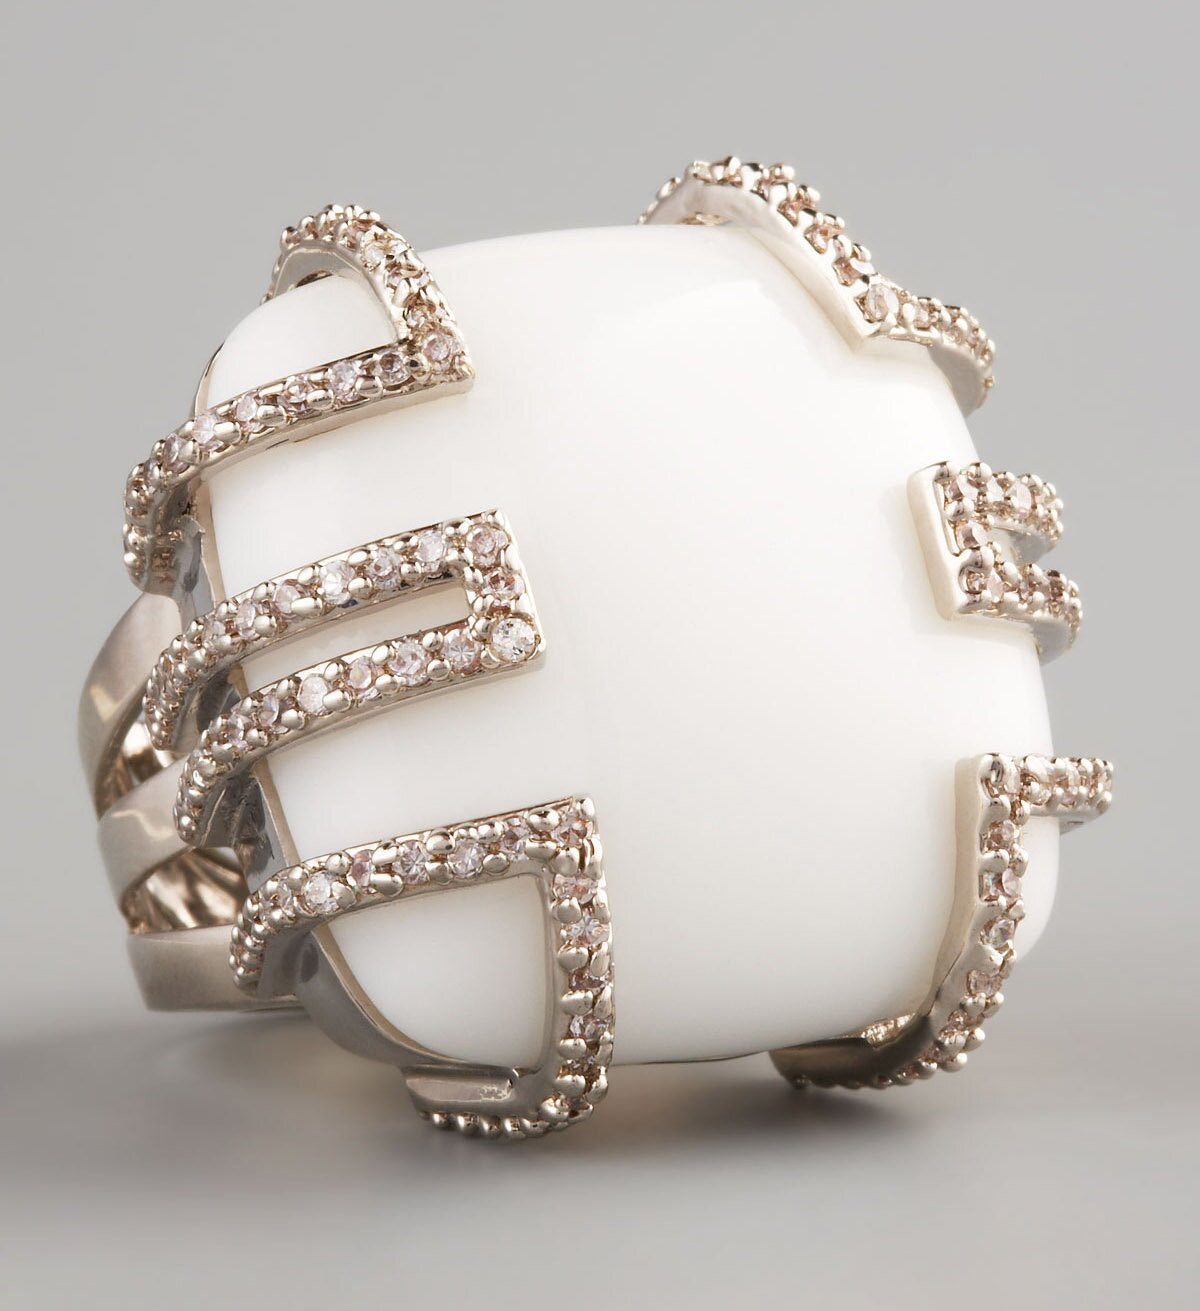 fashion rings 14